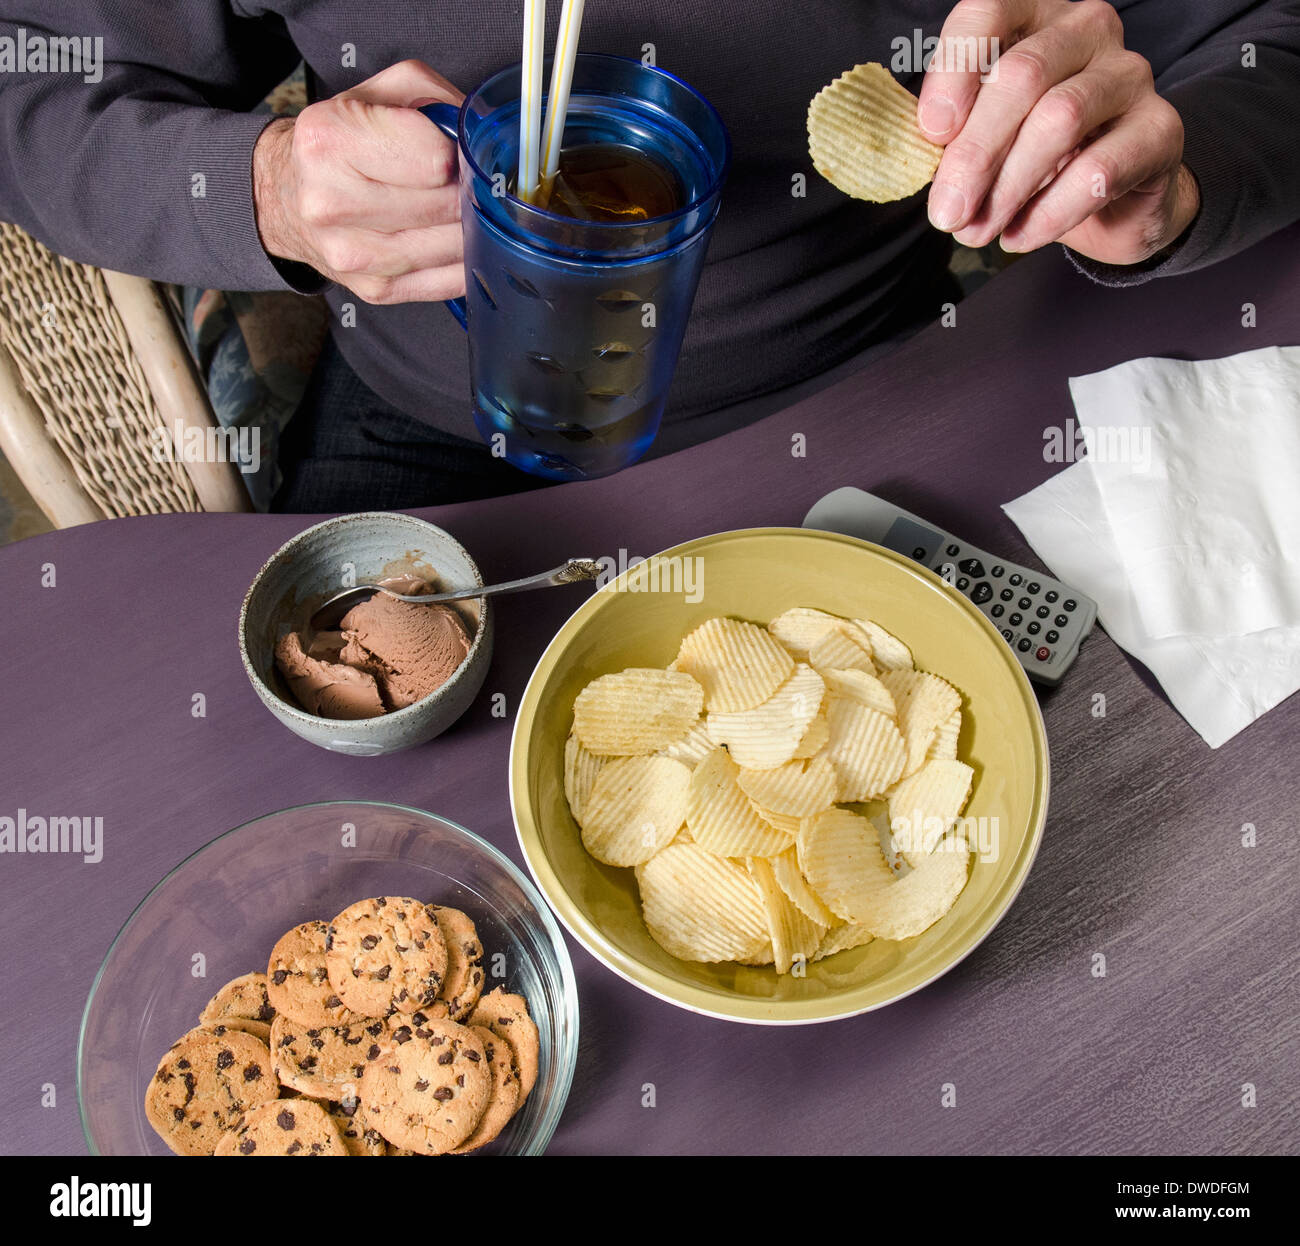 man eating junk food watching television - Stock Image